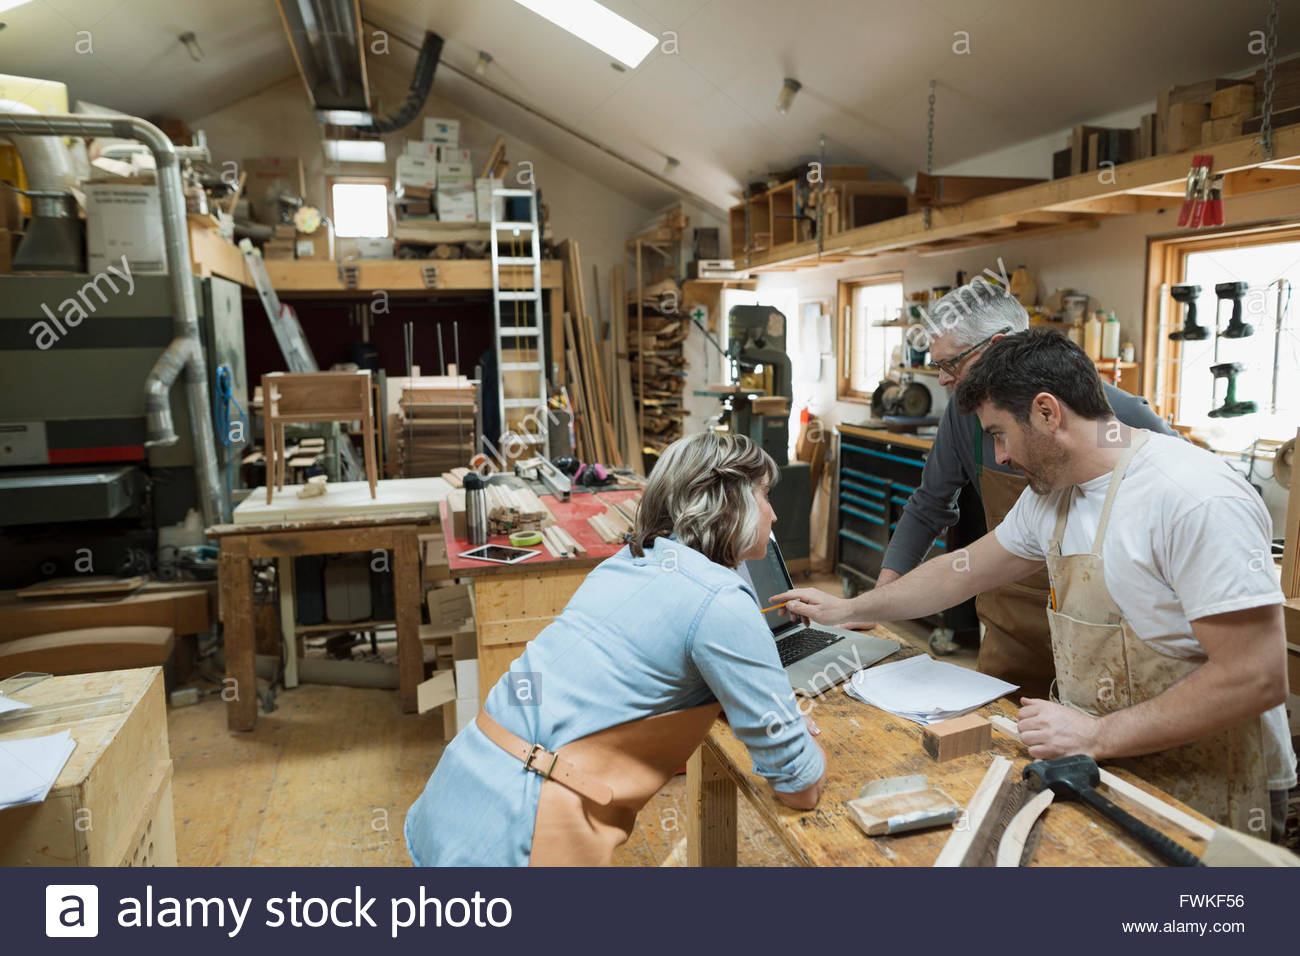 Carpenters using laptop in workshop - Stock Image